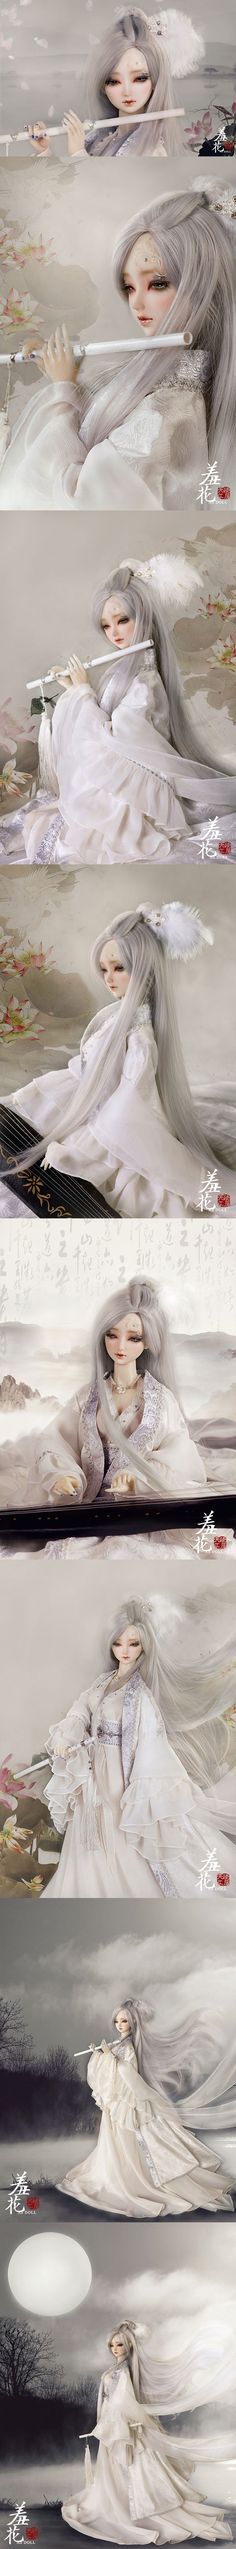 (AS Agency)BJD Yang YuHuan/Shy Girl 62cm Ball-Jointed Doll_SD size doll_Angell Studio_DOLL_Ball Jointed Dolls (BJD) company-Legenddoll